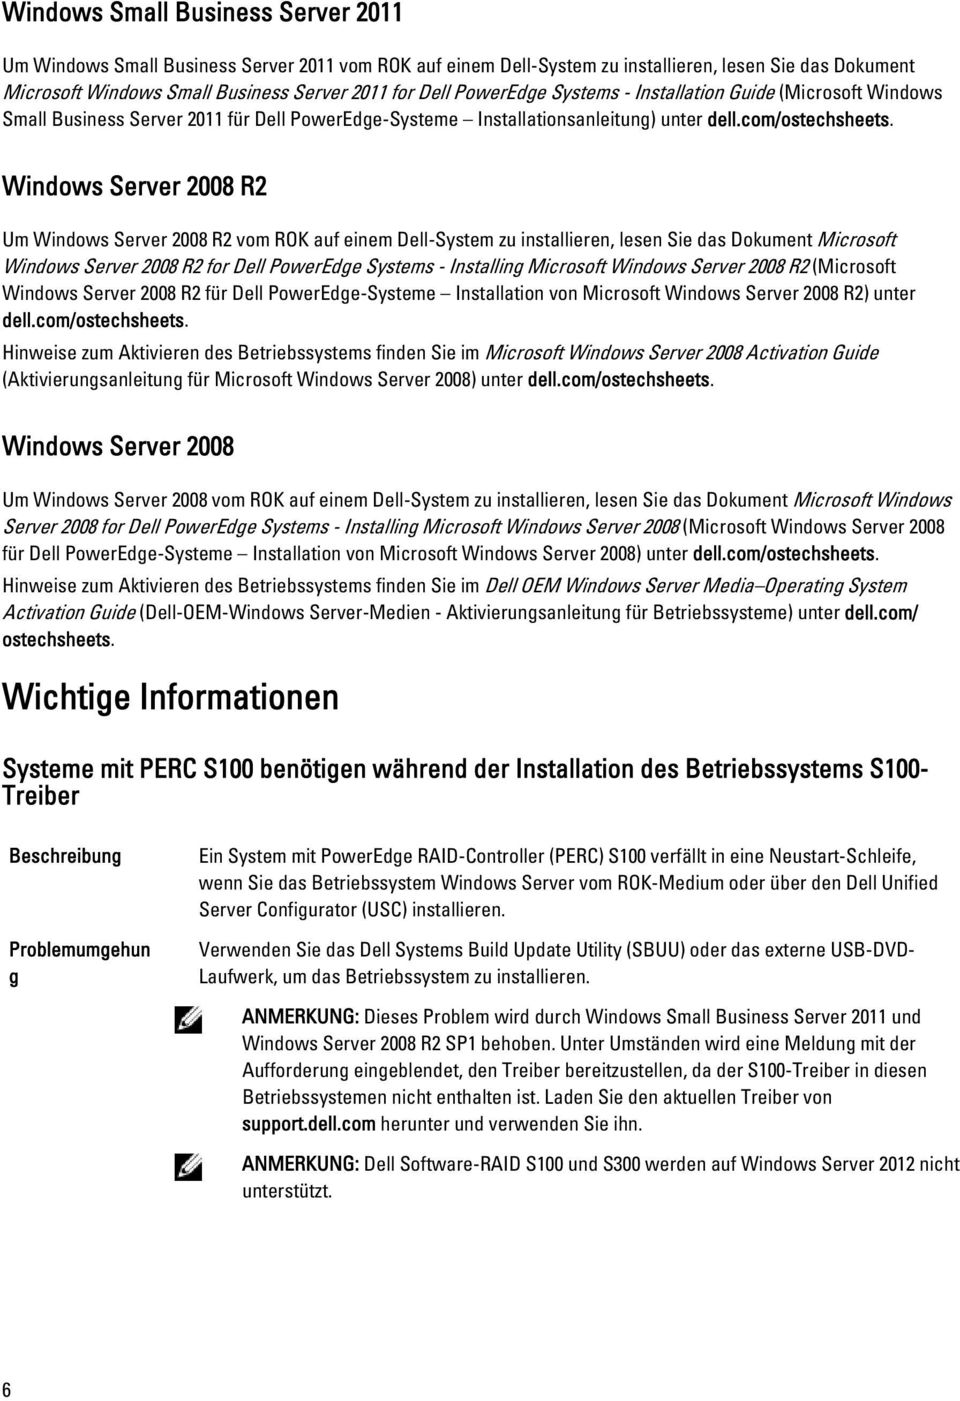 Windows Server 2008 R2 Um Windows Server 2008 R2 vom ROK auf einem Dell-System zu installieren, lesen Sie das Dokument Microsoft Windows Server 2008 R2 for Dell PowerEdge Systems - Installing